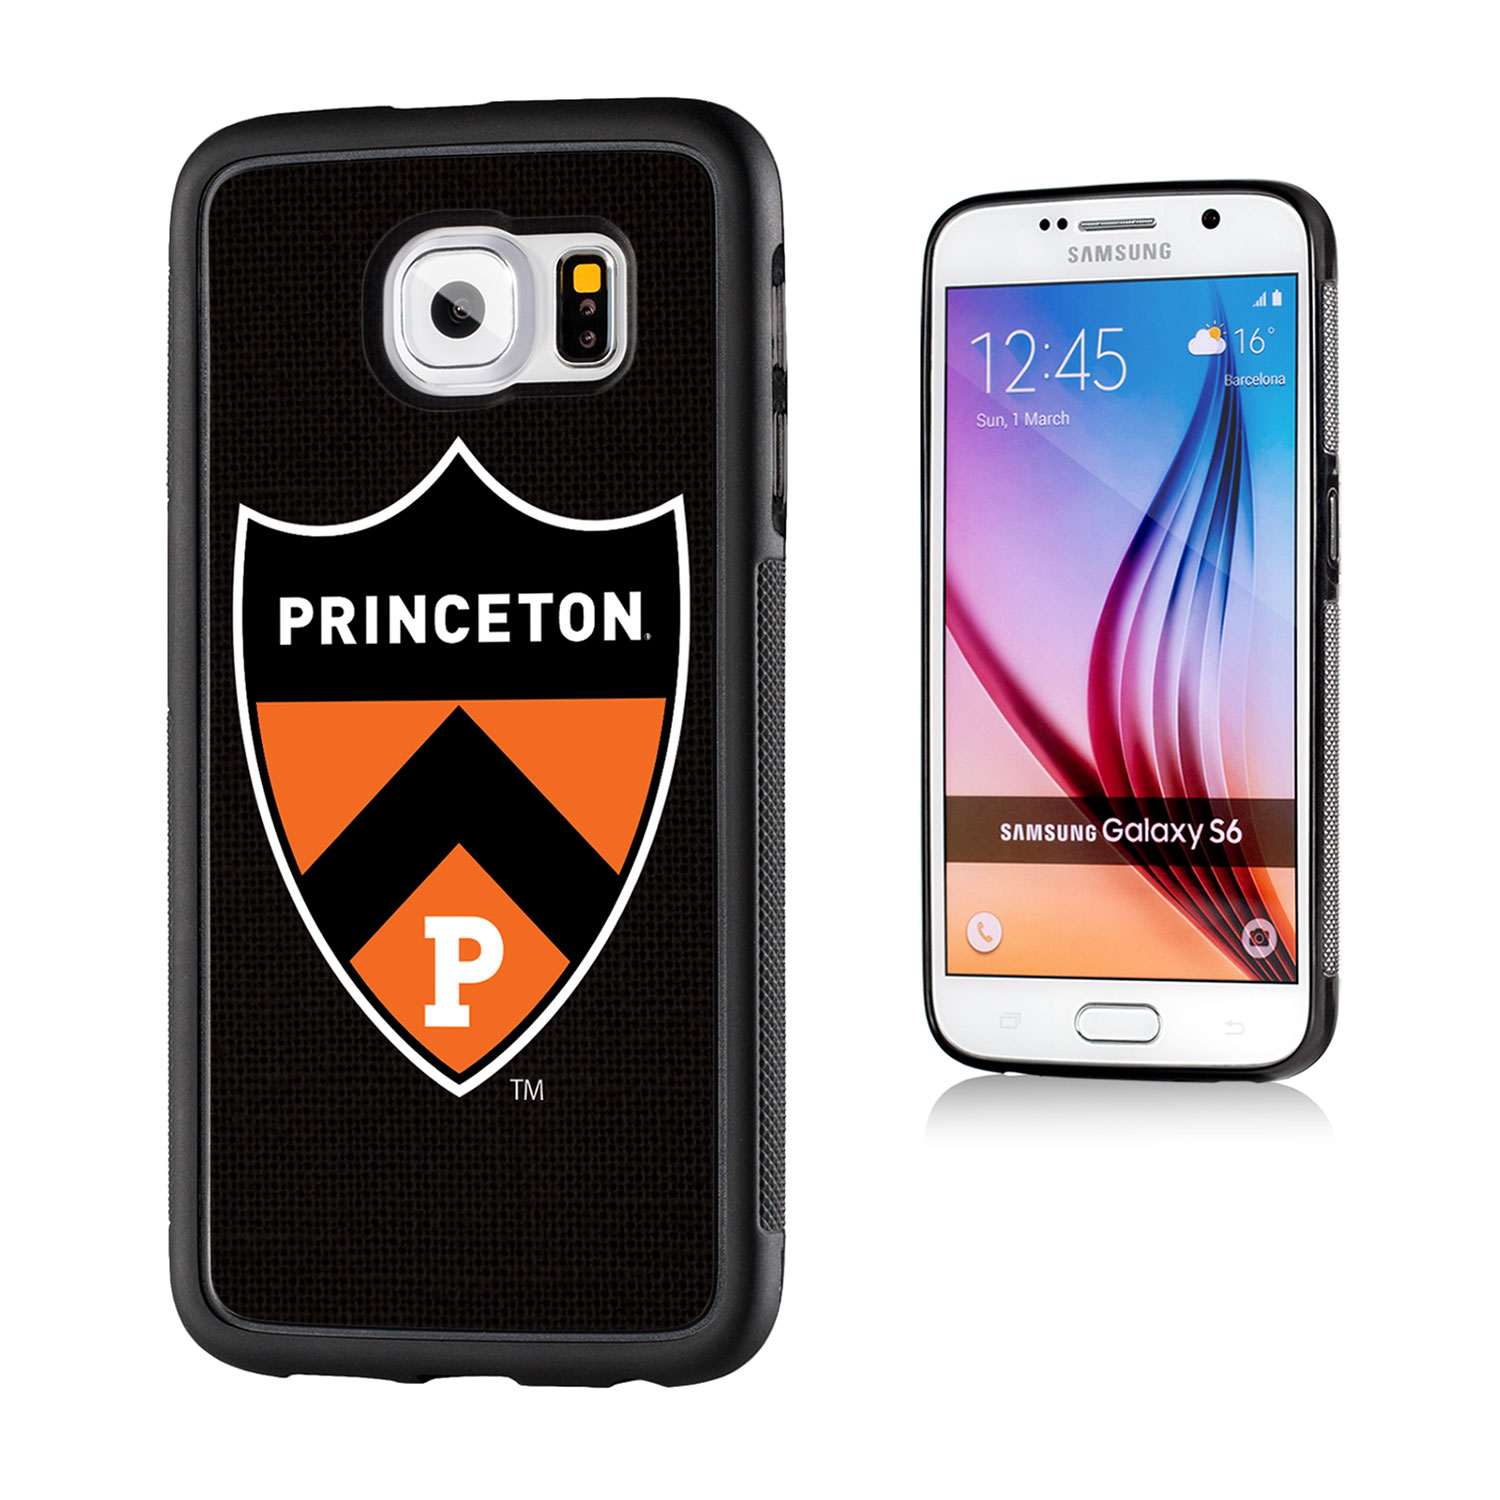 Princeton Solid Galaxy S6 Bumper Case by Keyscaper